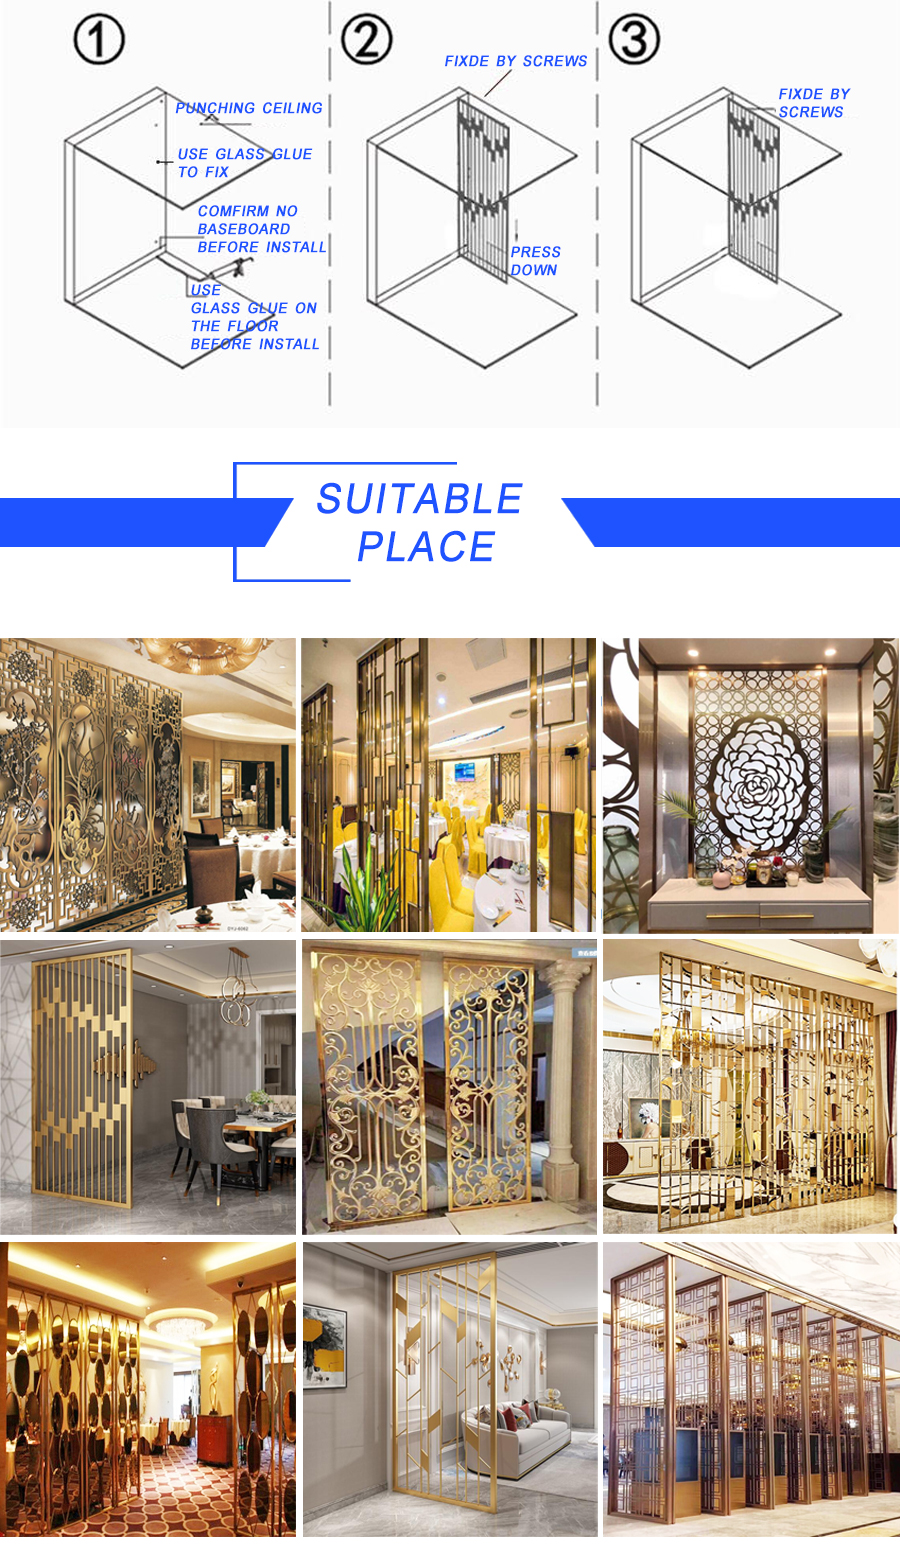 JYFI189  Stainless Steel Laser Cut Decorative Partition Screen Bedroom Hall And Dining Room Partition For Decorative